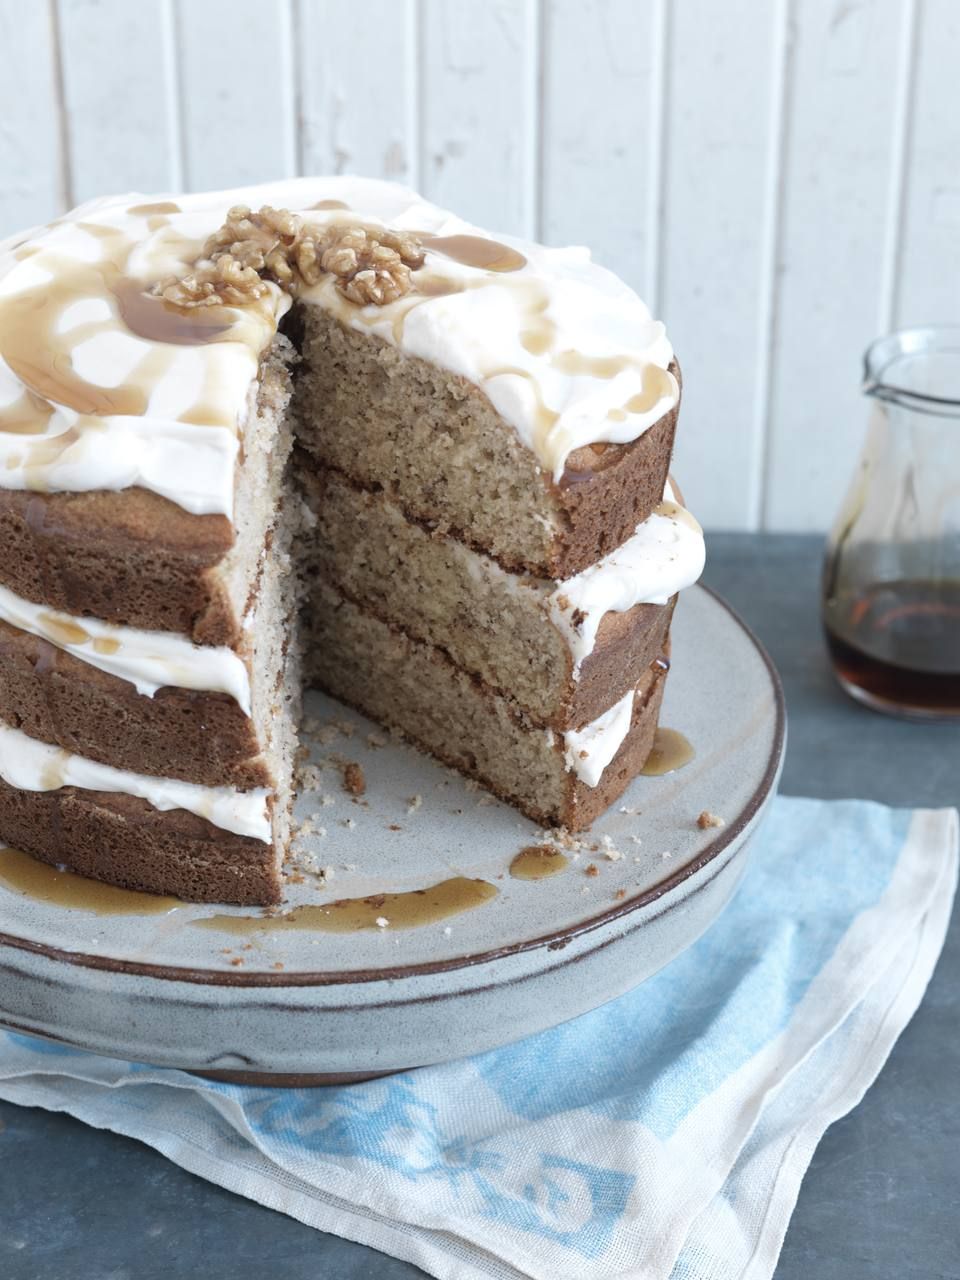 Layered Cake with Frosting, Drizzle, and Walnuts